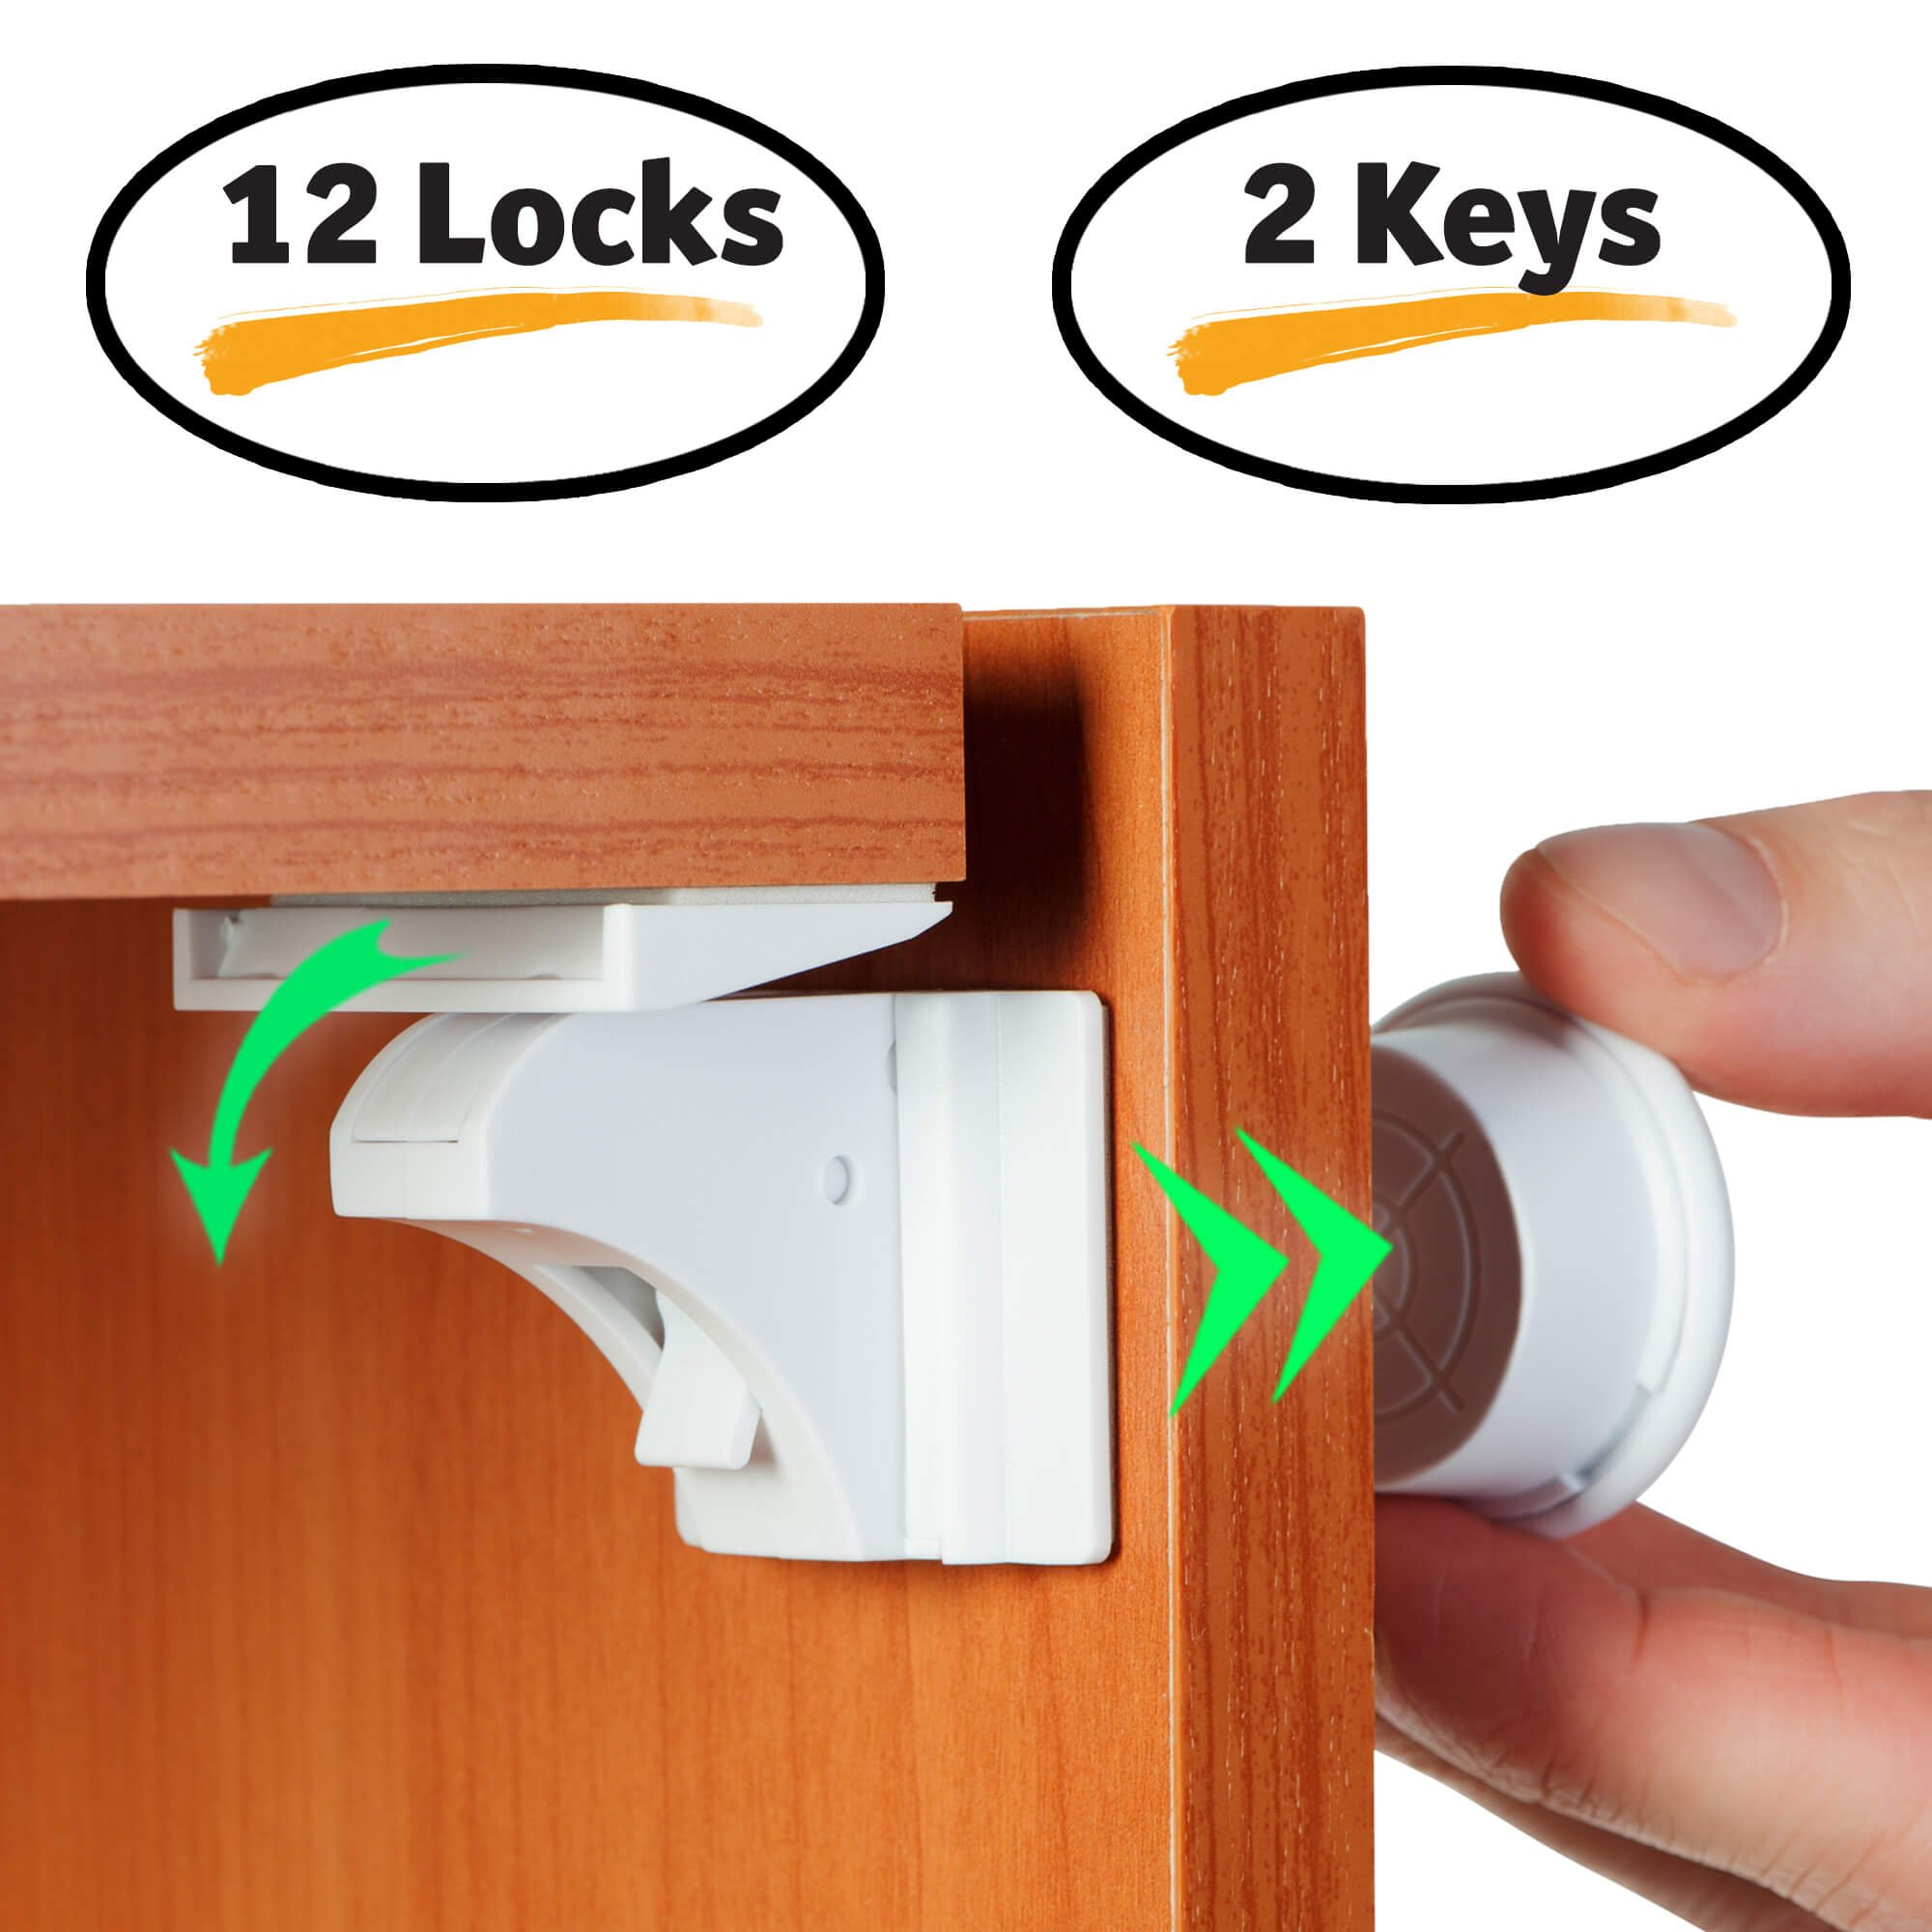 Baby Proof Magnetic Cabinet Locks for Child Safety 12 Latches & 2 Keys Ideal for Baby Proofing Kitchen... by BABY TRUST